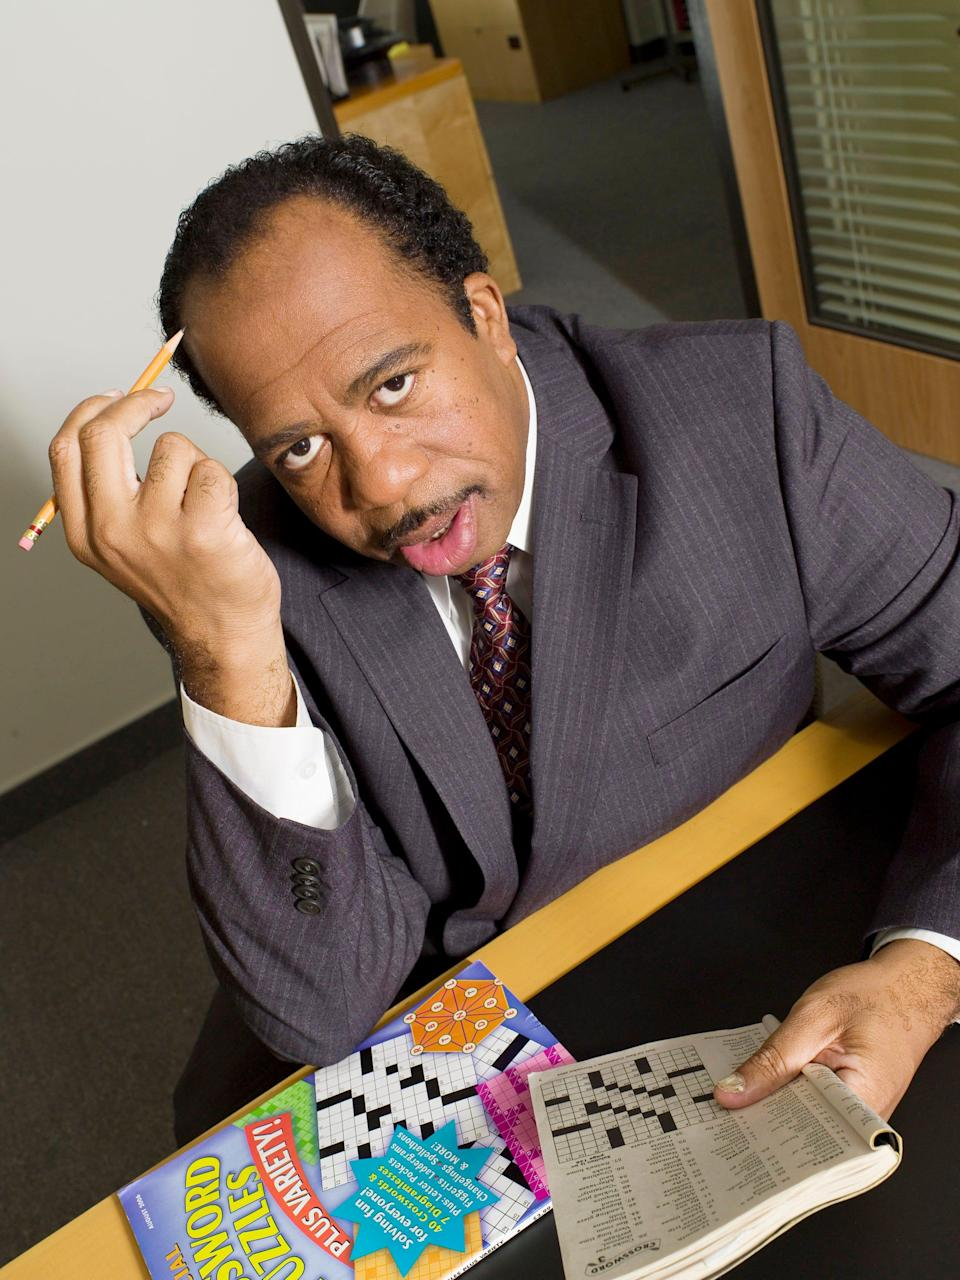 Leslie David Baker, known best for his role as the grouchy Stanley Hudson on the hit NBC comedy